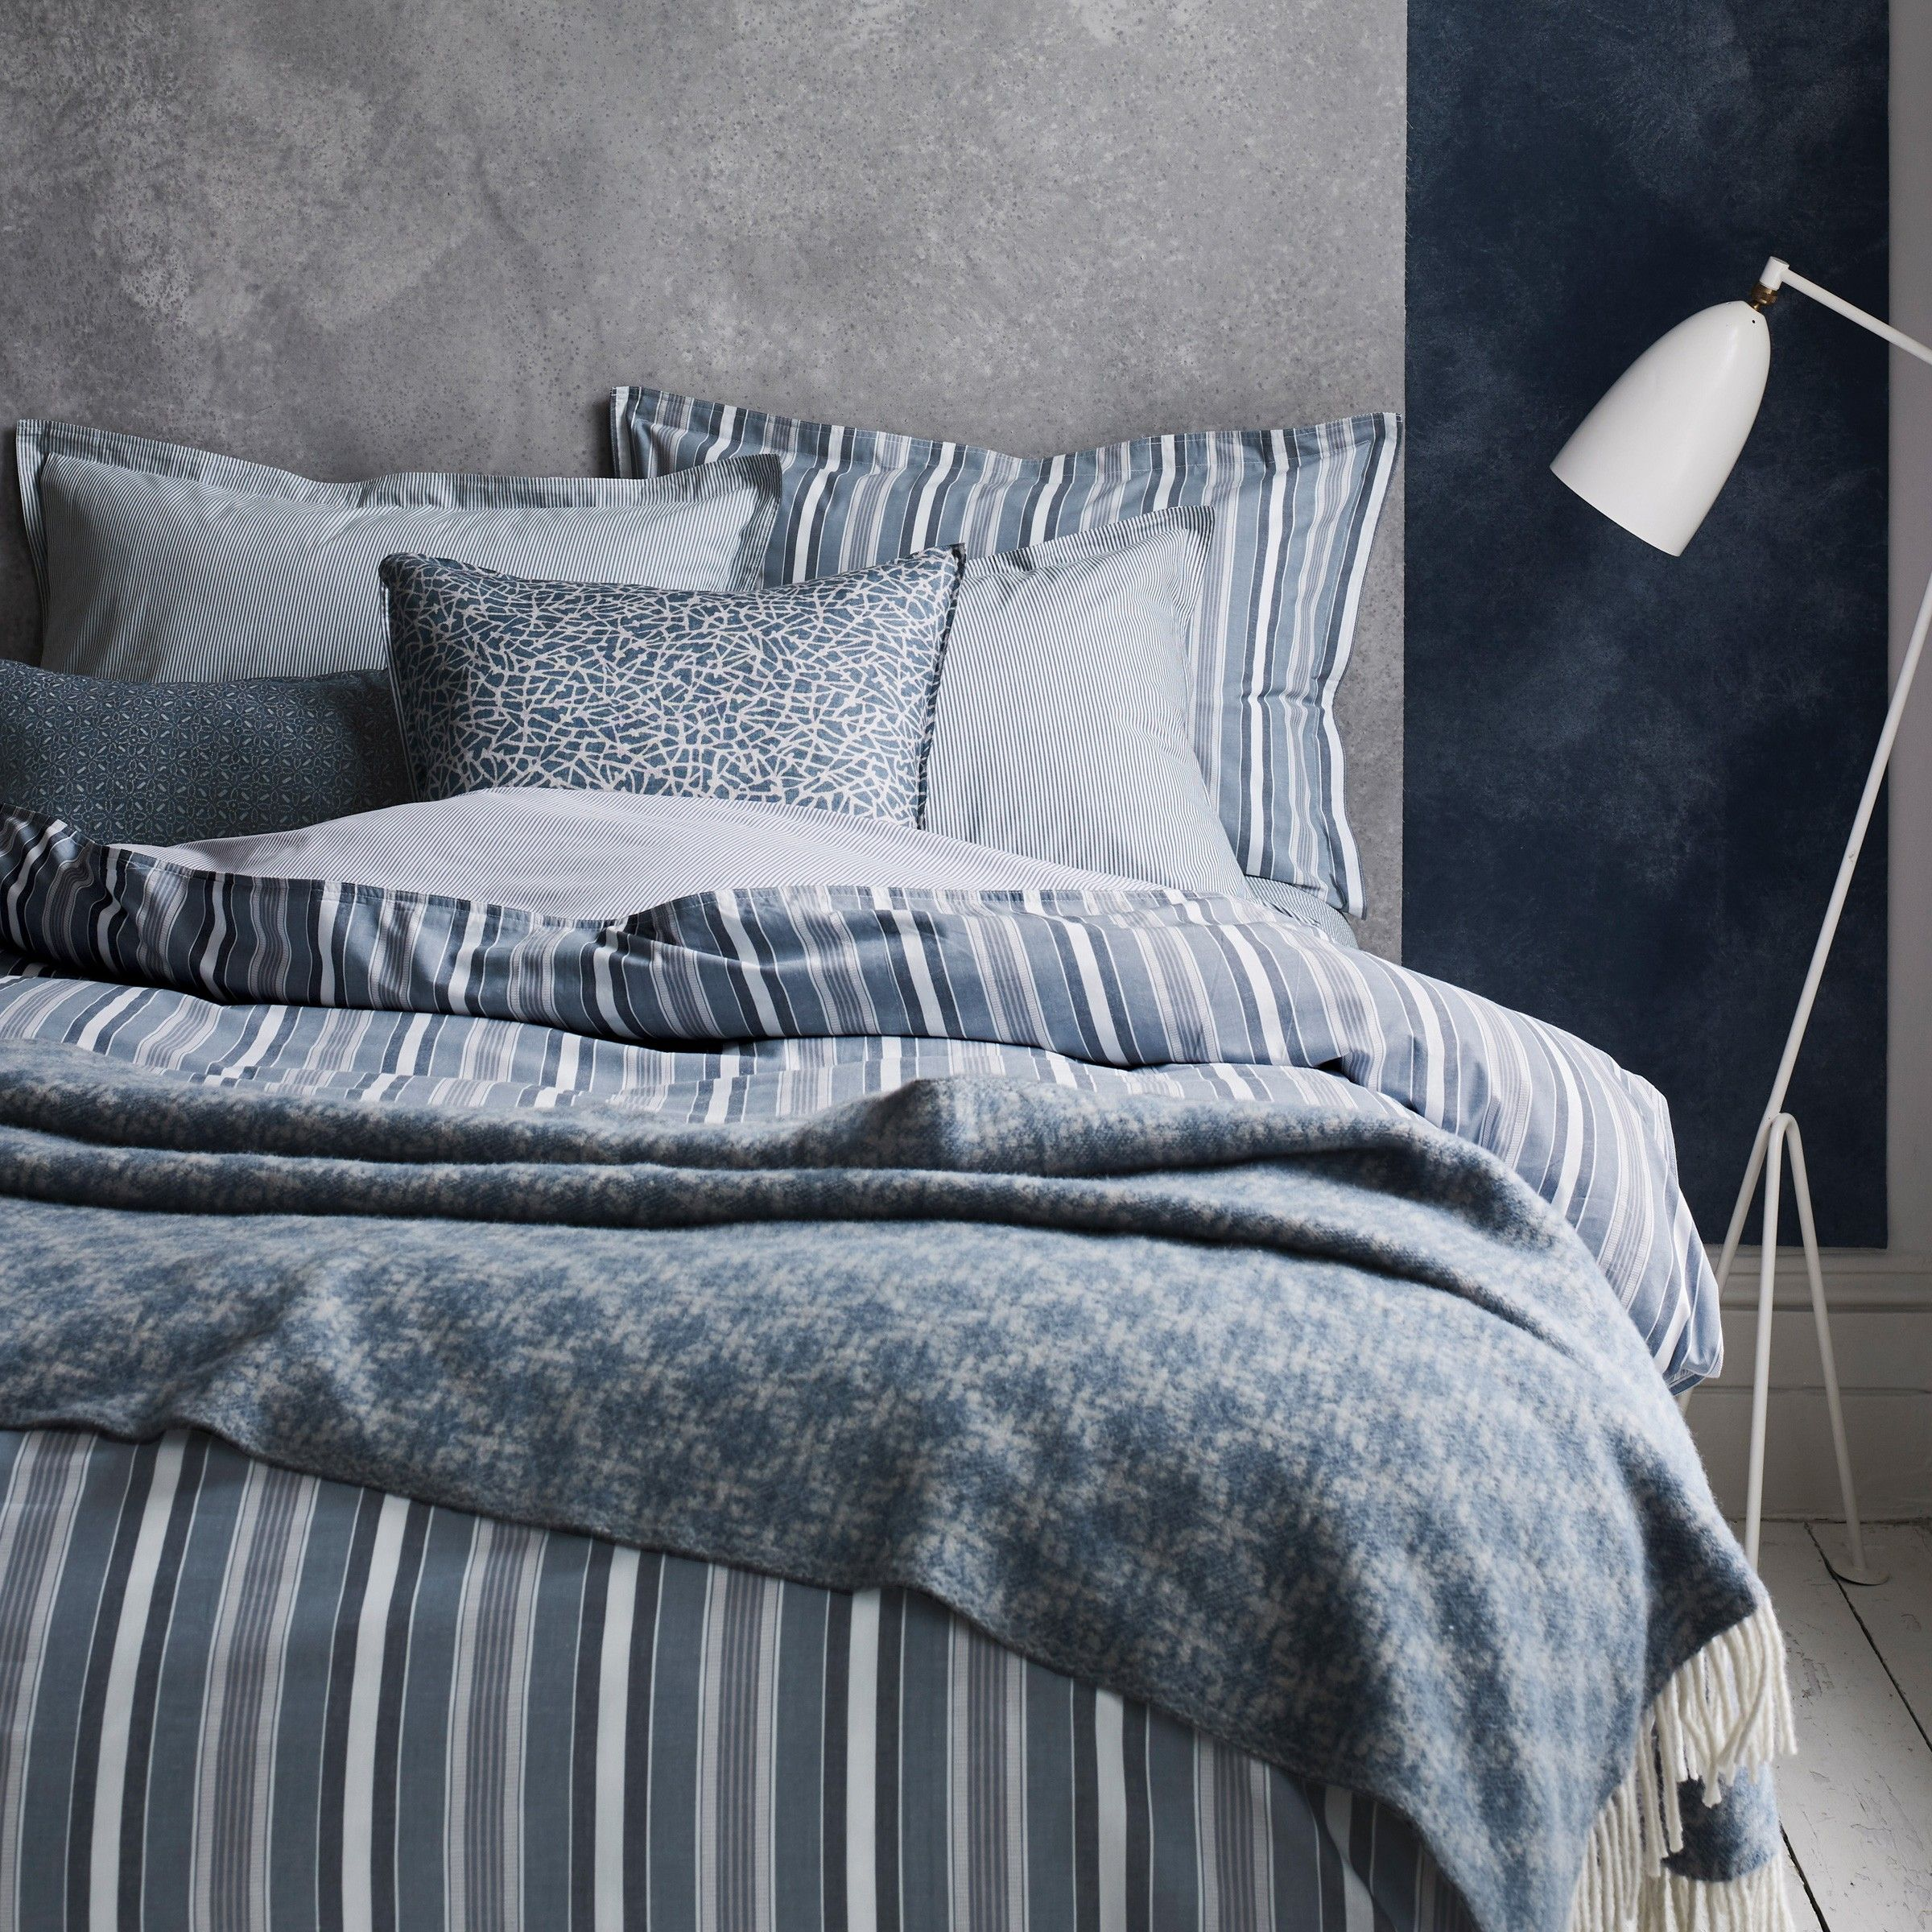 Murmur Kyoto Stripe Bedding In Copenhagen Blue Murmur Striped Bed Sheets Striped Bedding Striped Duvet Covers